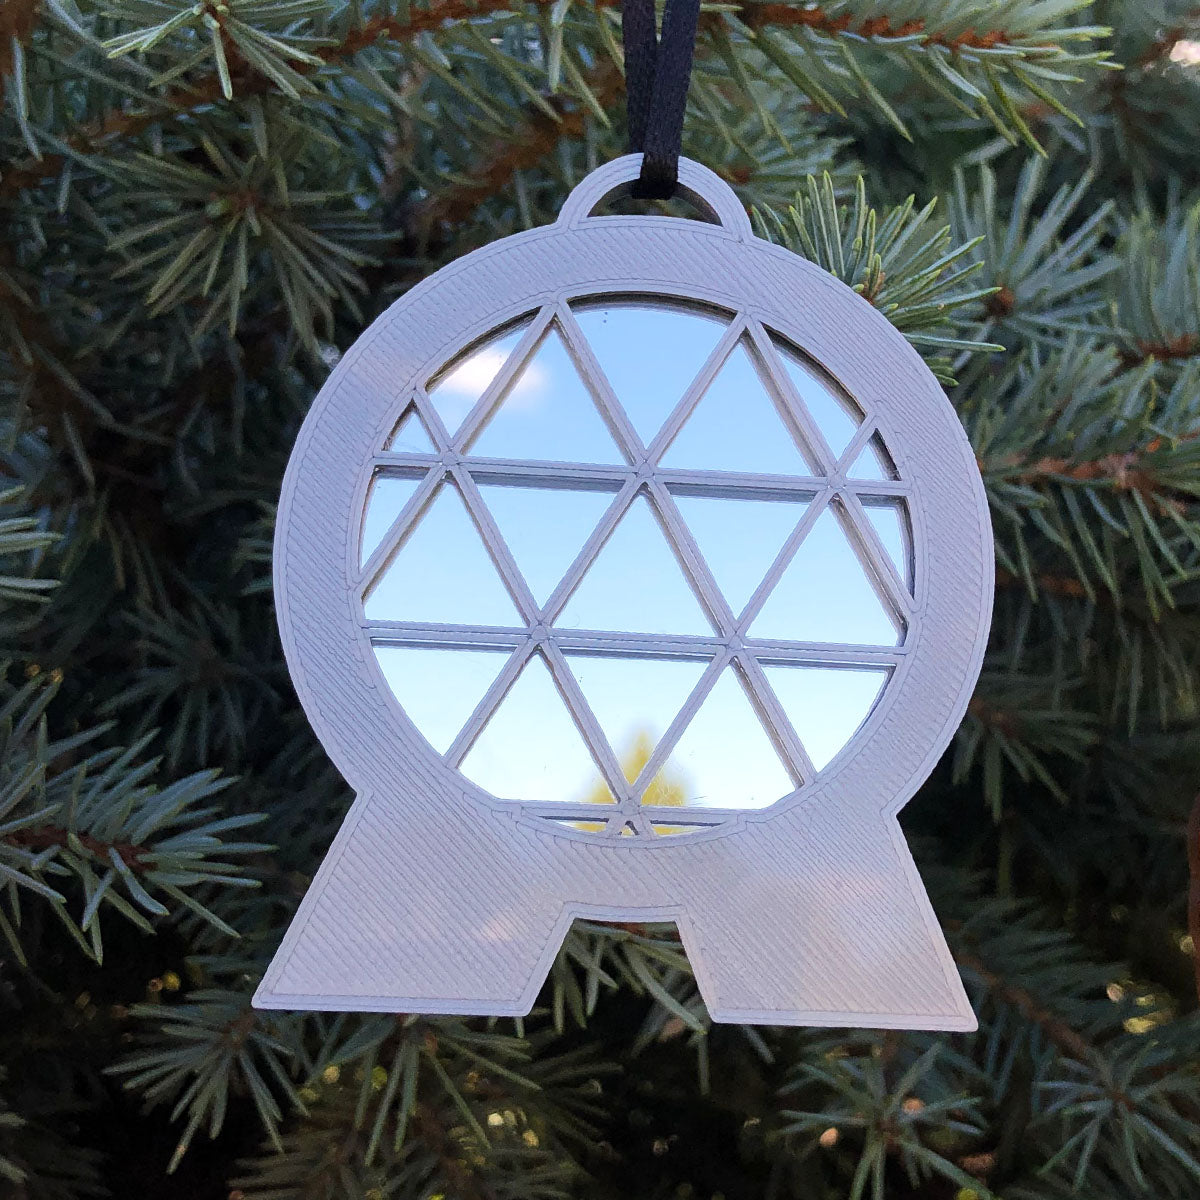 Mirror Spaceship Earth Christmas Ornament